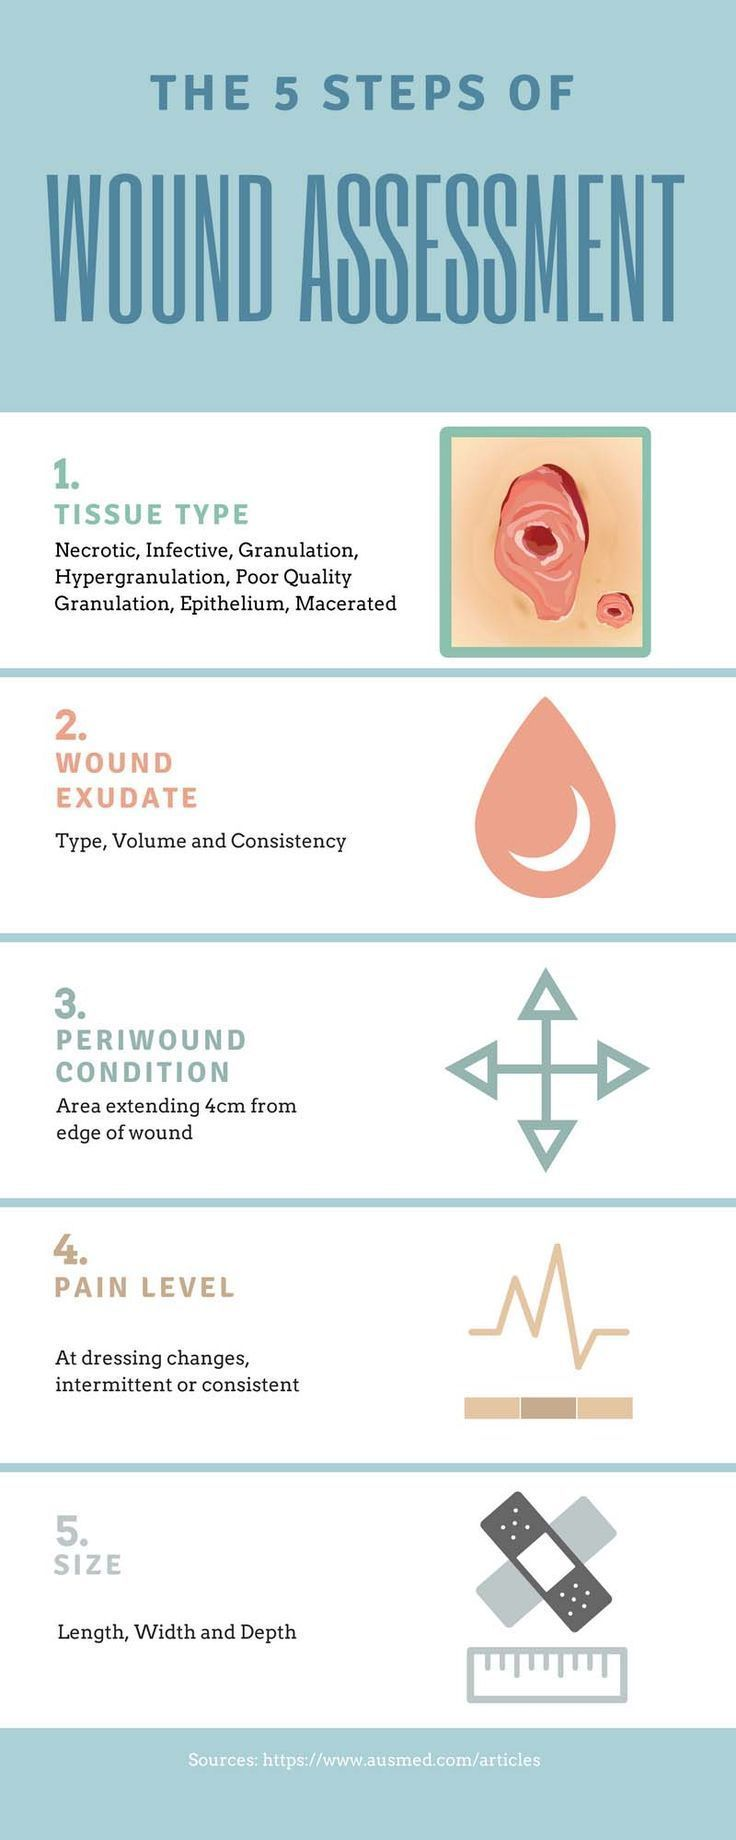 Ausmeds wound care and wound healing guide for nurses infographic ausmeds wound care and wound healing guide for nurses infographic wound assessment 1betcityfo Gallery